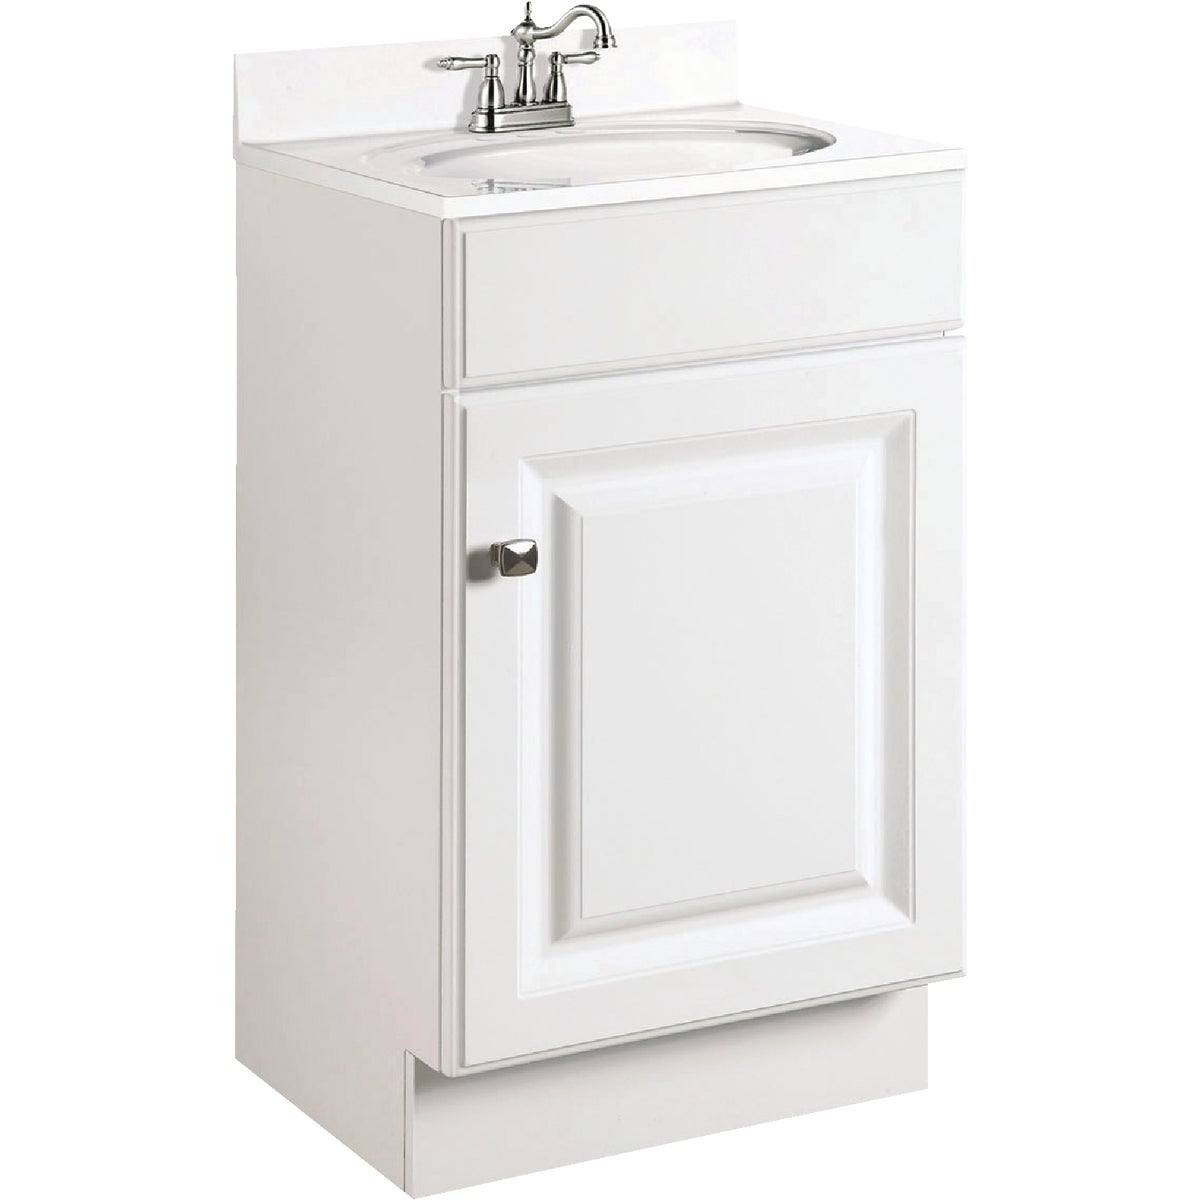 18X16 WHITE VANITY - 531723 by Design House  Dhi